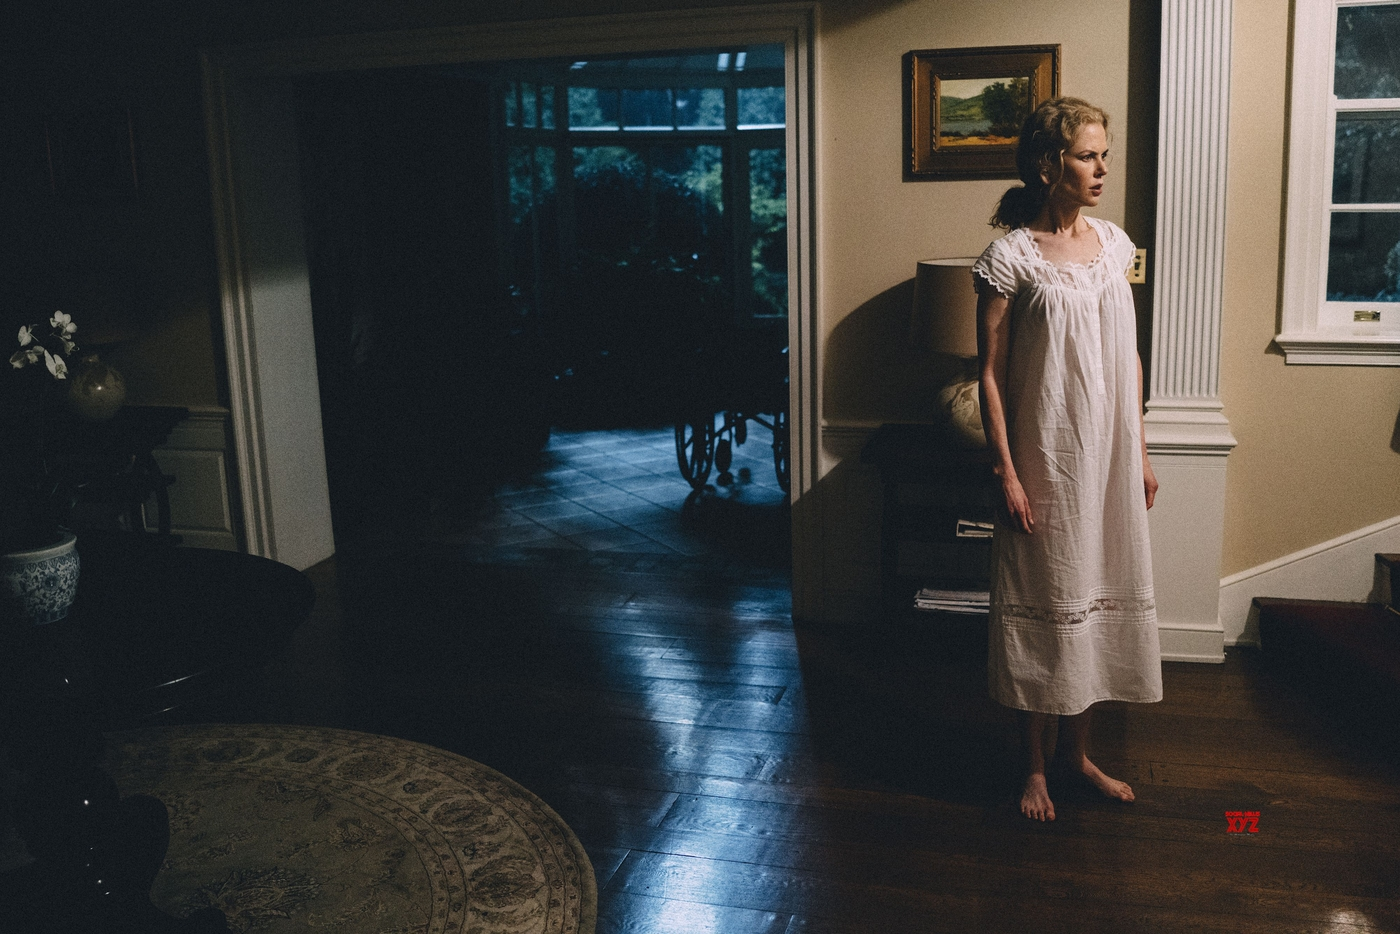 the-killing-of-a-sacred-deer-movie-Poster-and-stills-.jpg